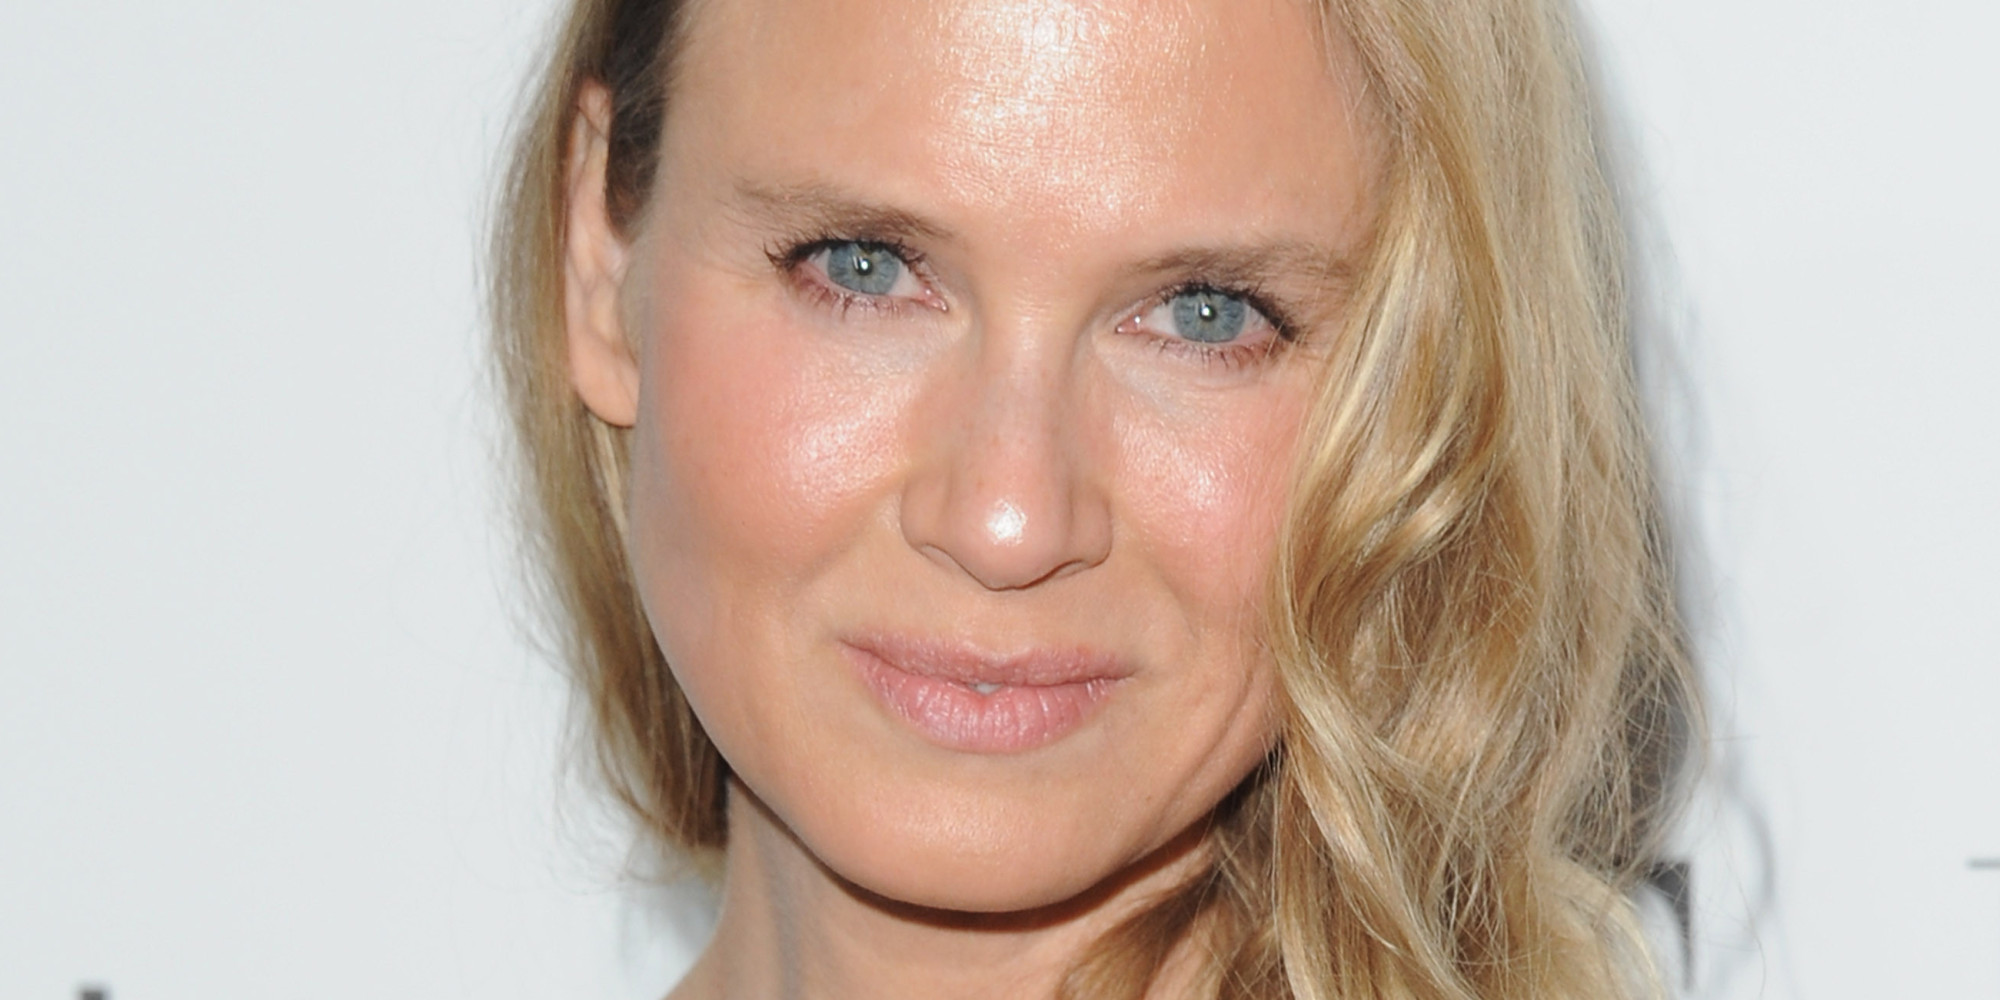 Renee Zellweger Speaks Out: 'I'm Glad Folks Think I Look Different ...